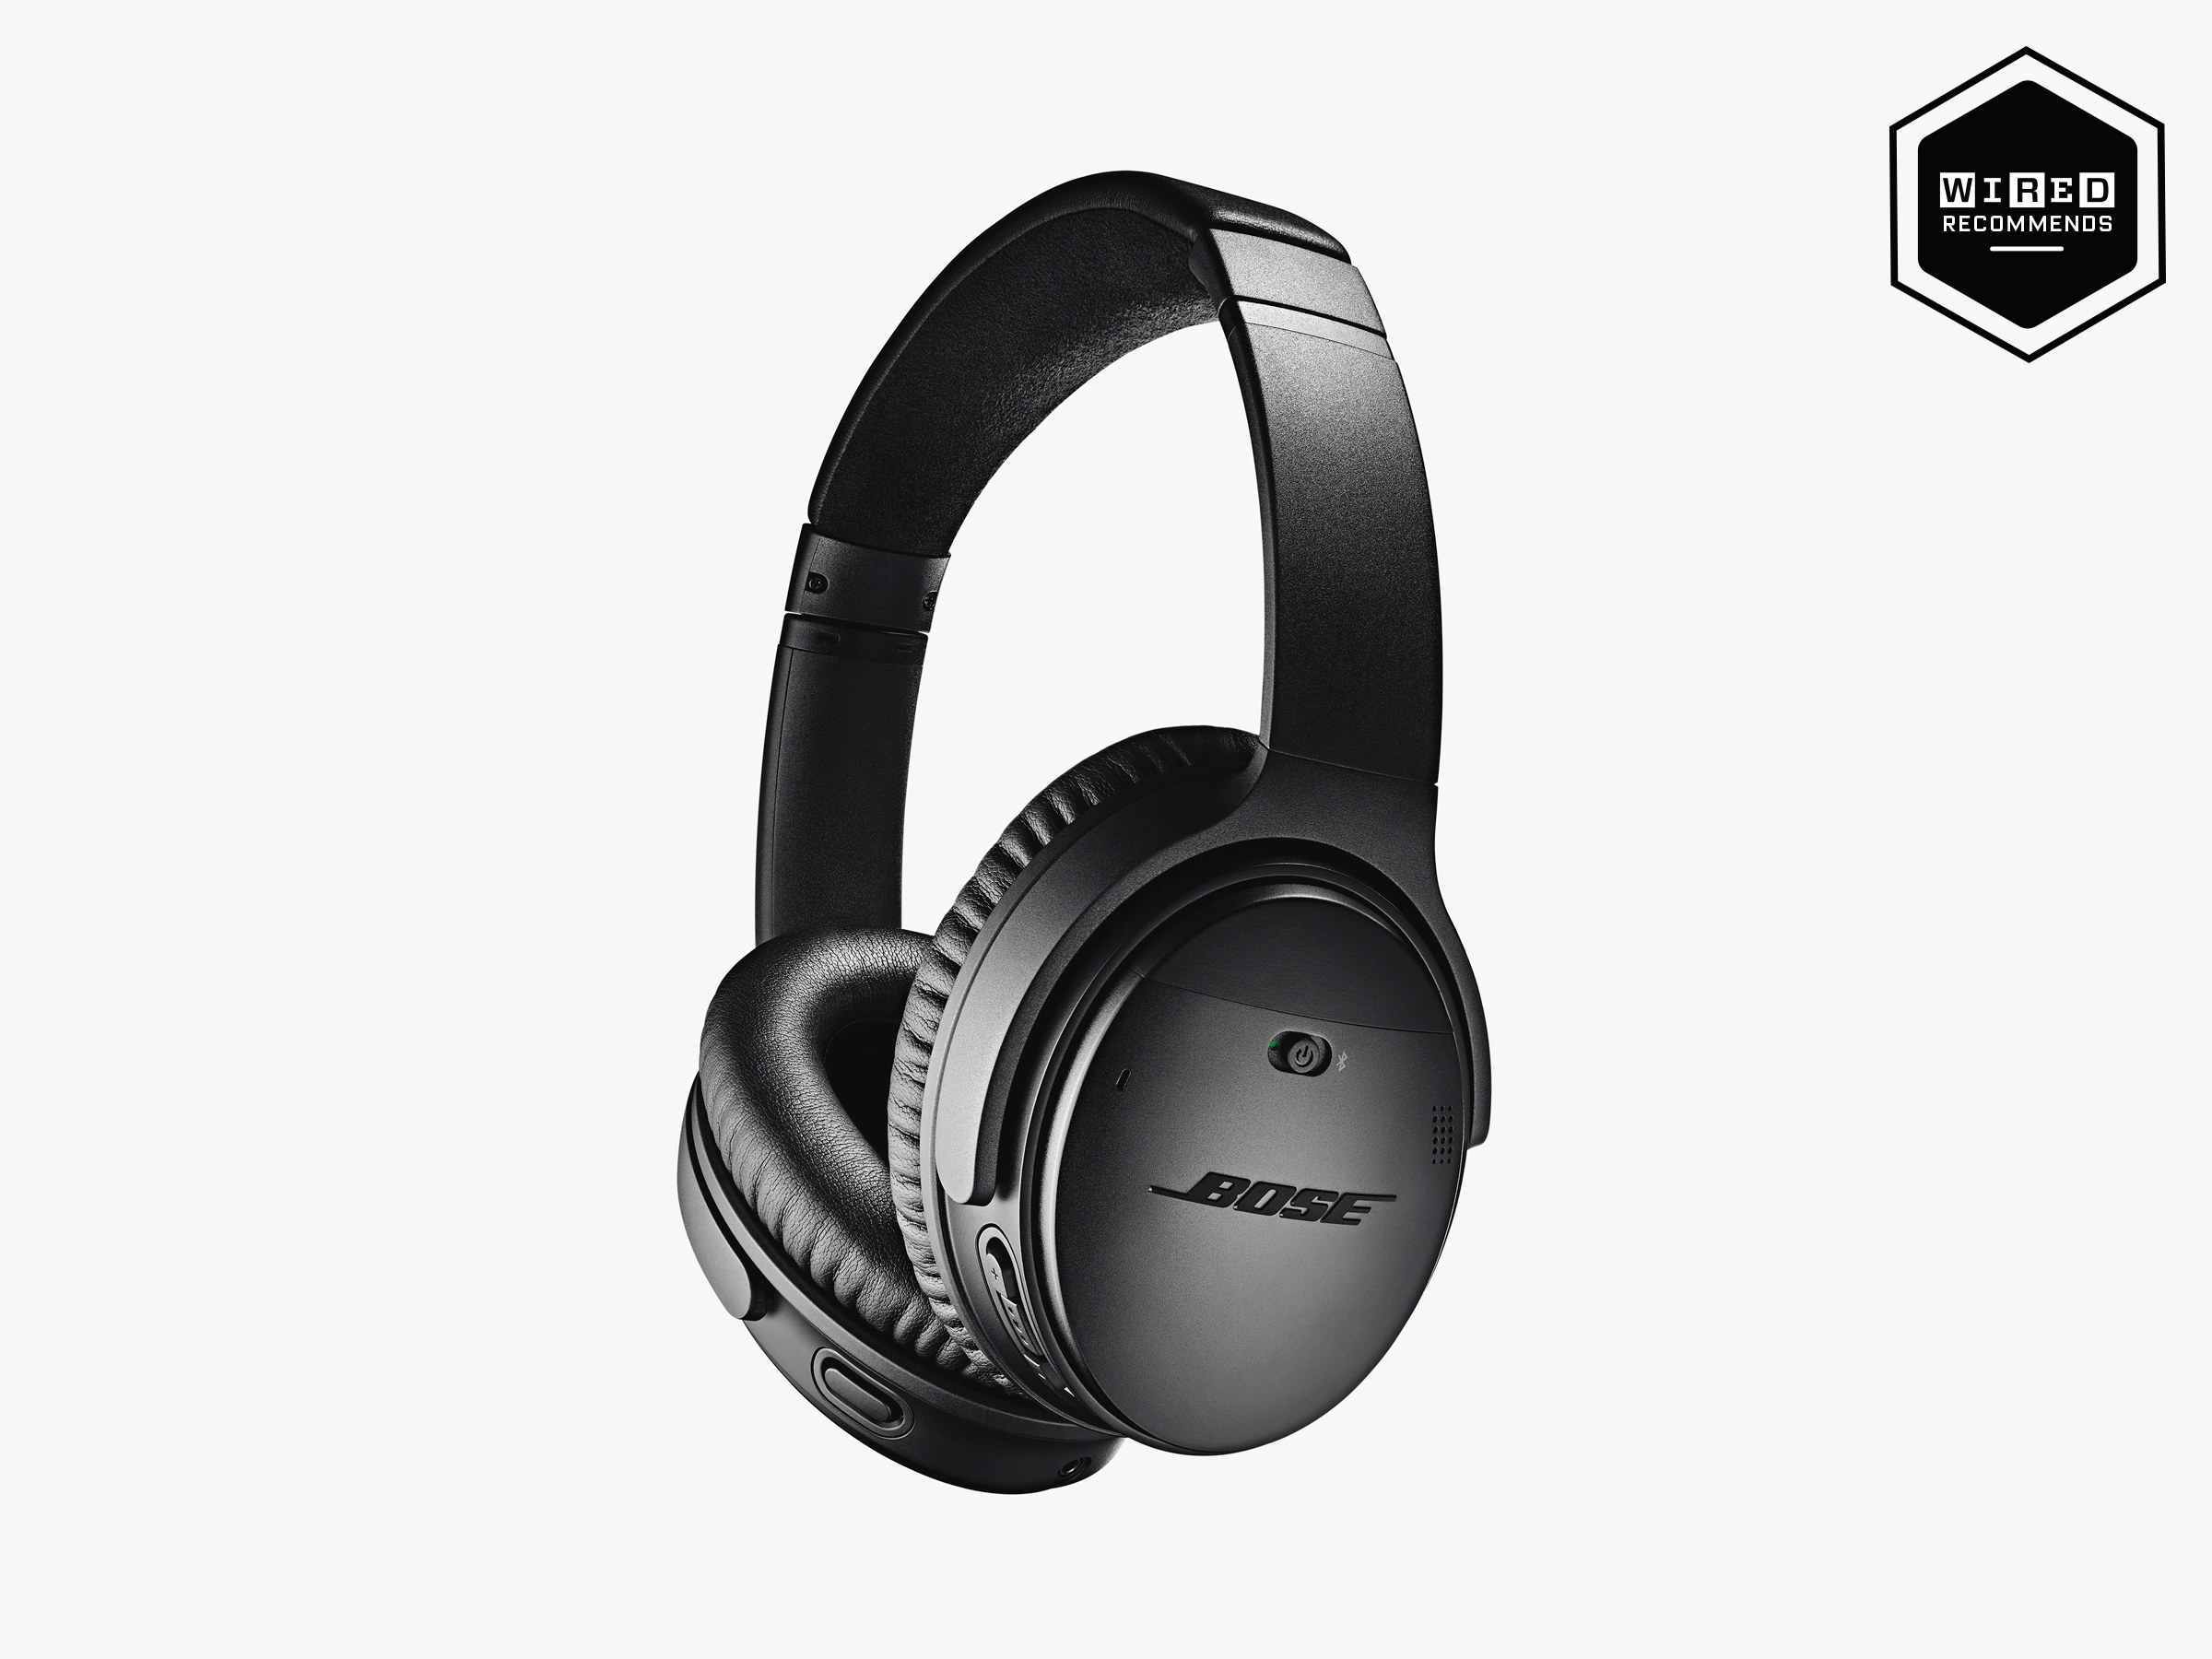 Bose have set the standard for active noise cancelation for some time, and the QuietComfort 35 II are its top cans. New users had Alexa installed out of the box. Source:  WIRED